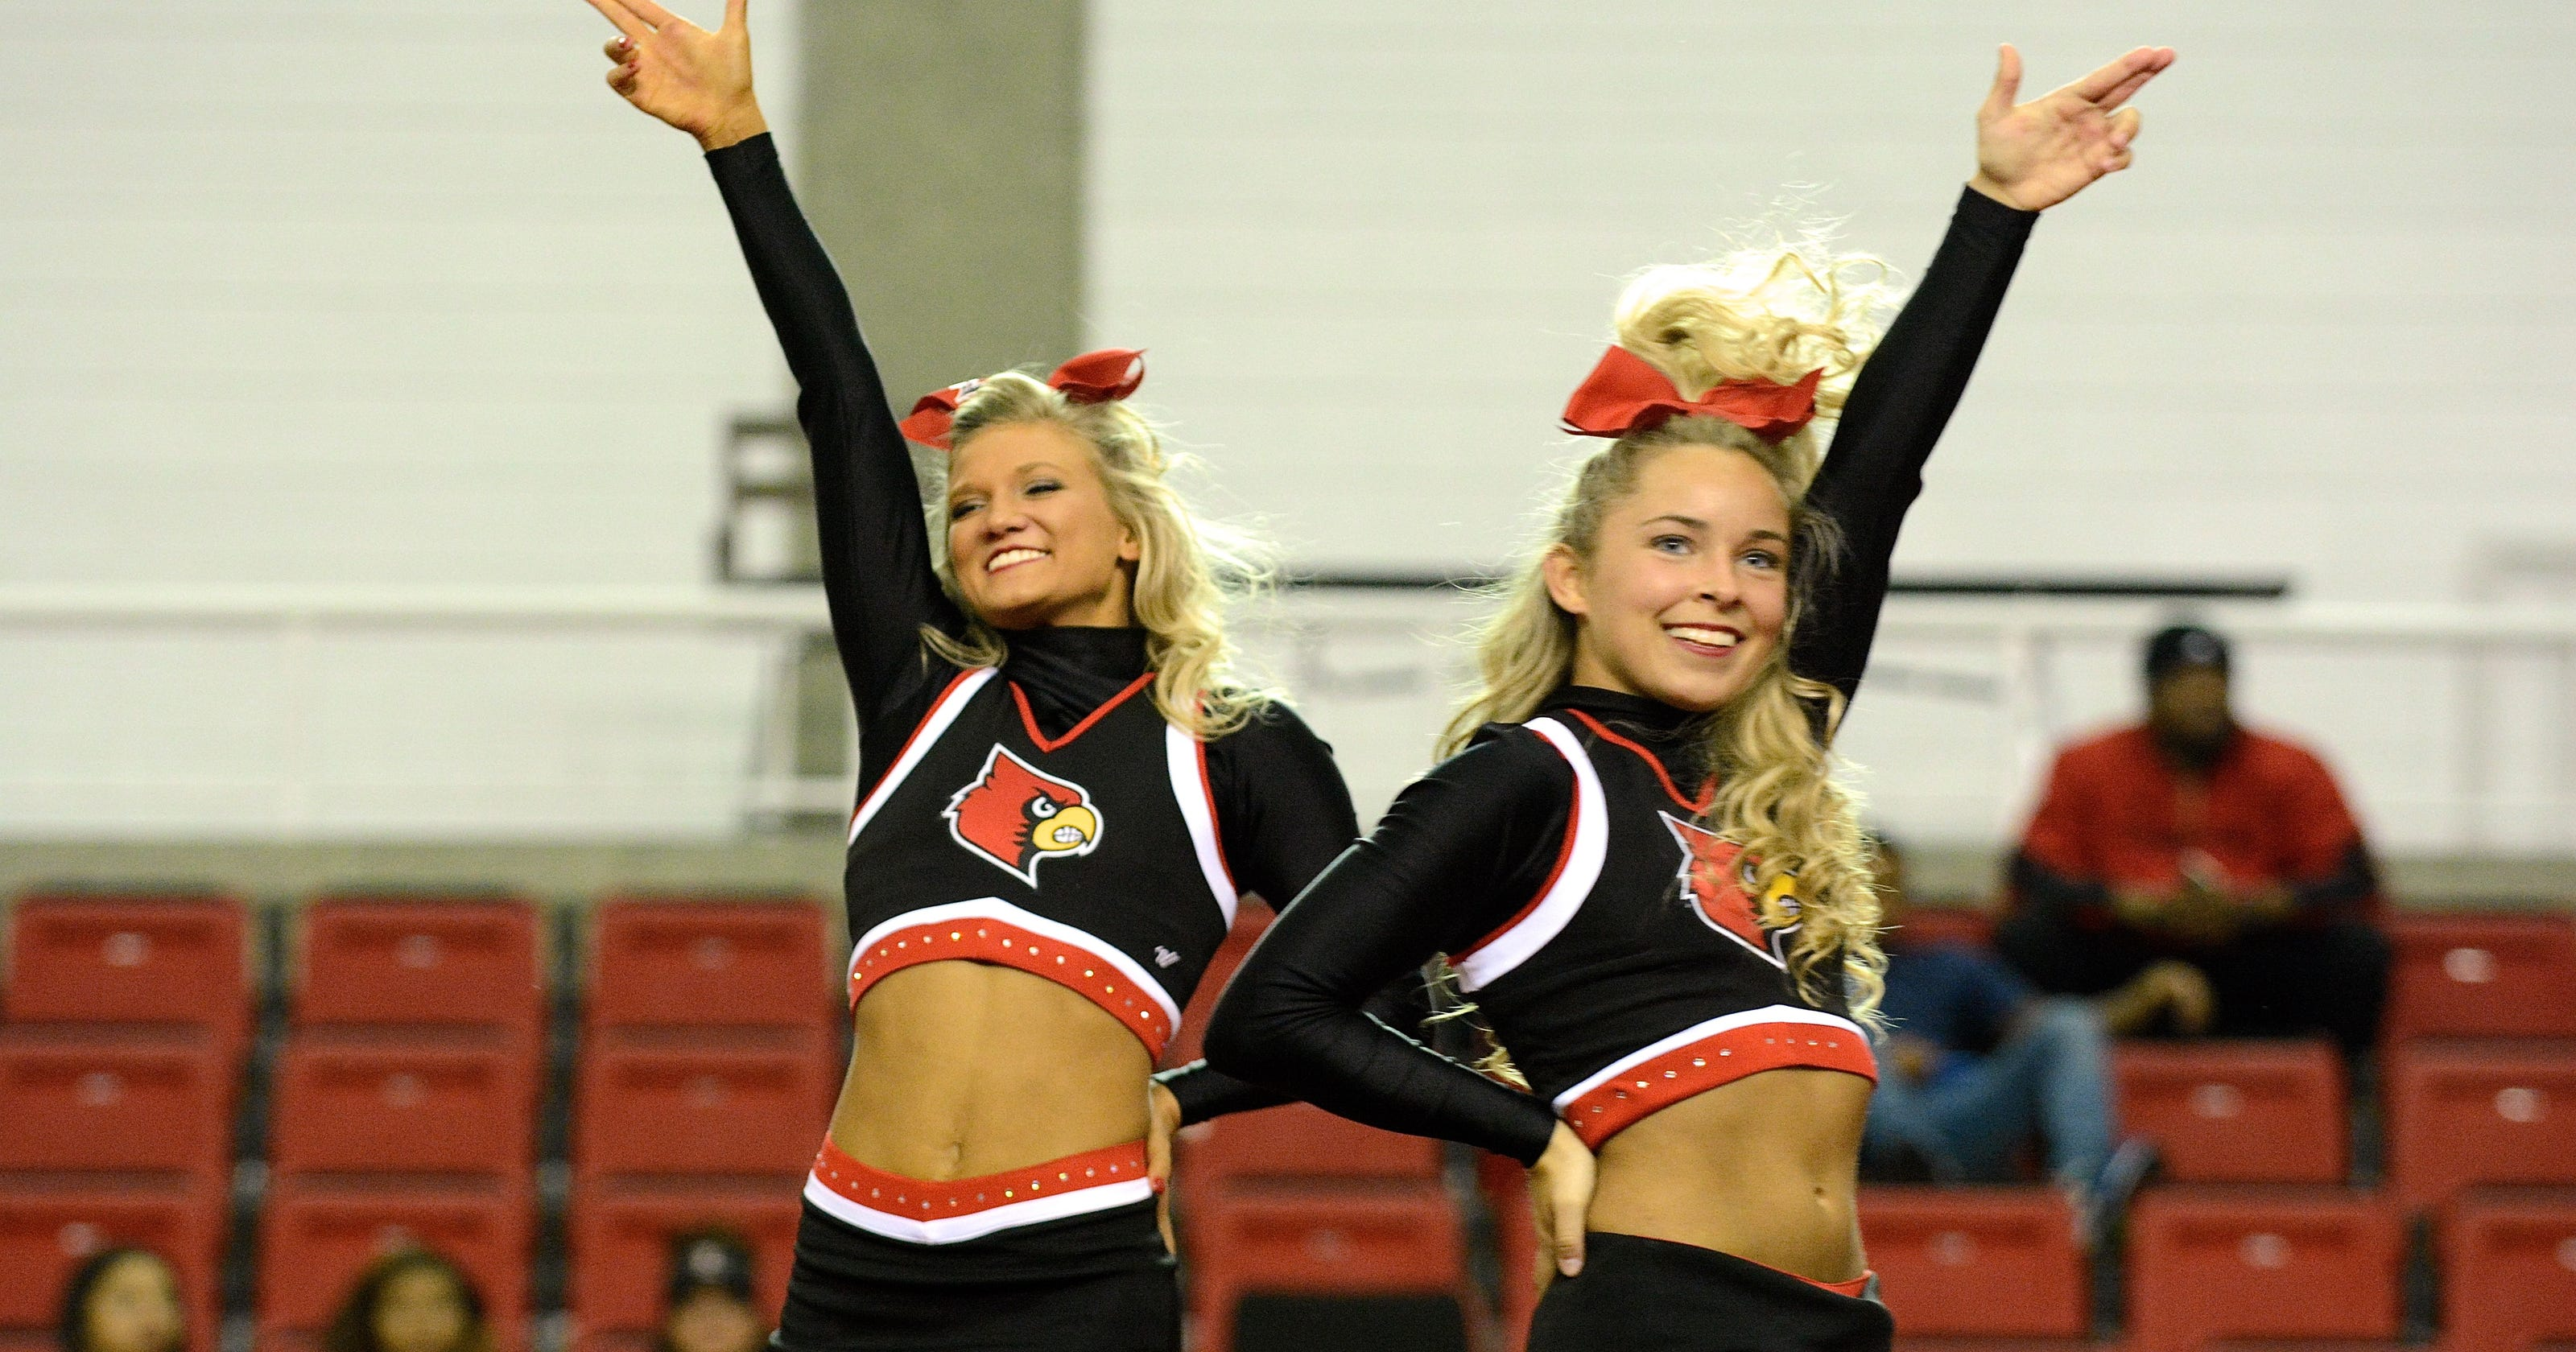 Get Pepped Up With University Of Louisville Cheer And